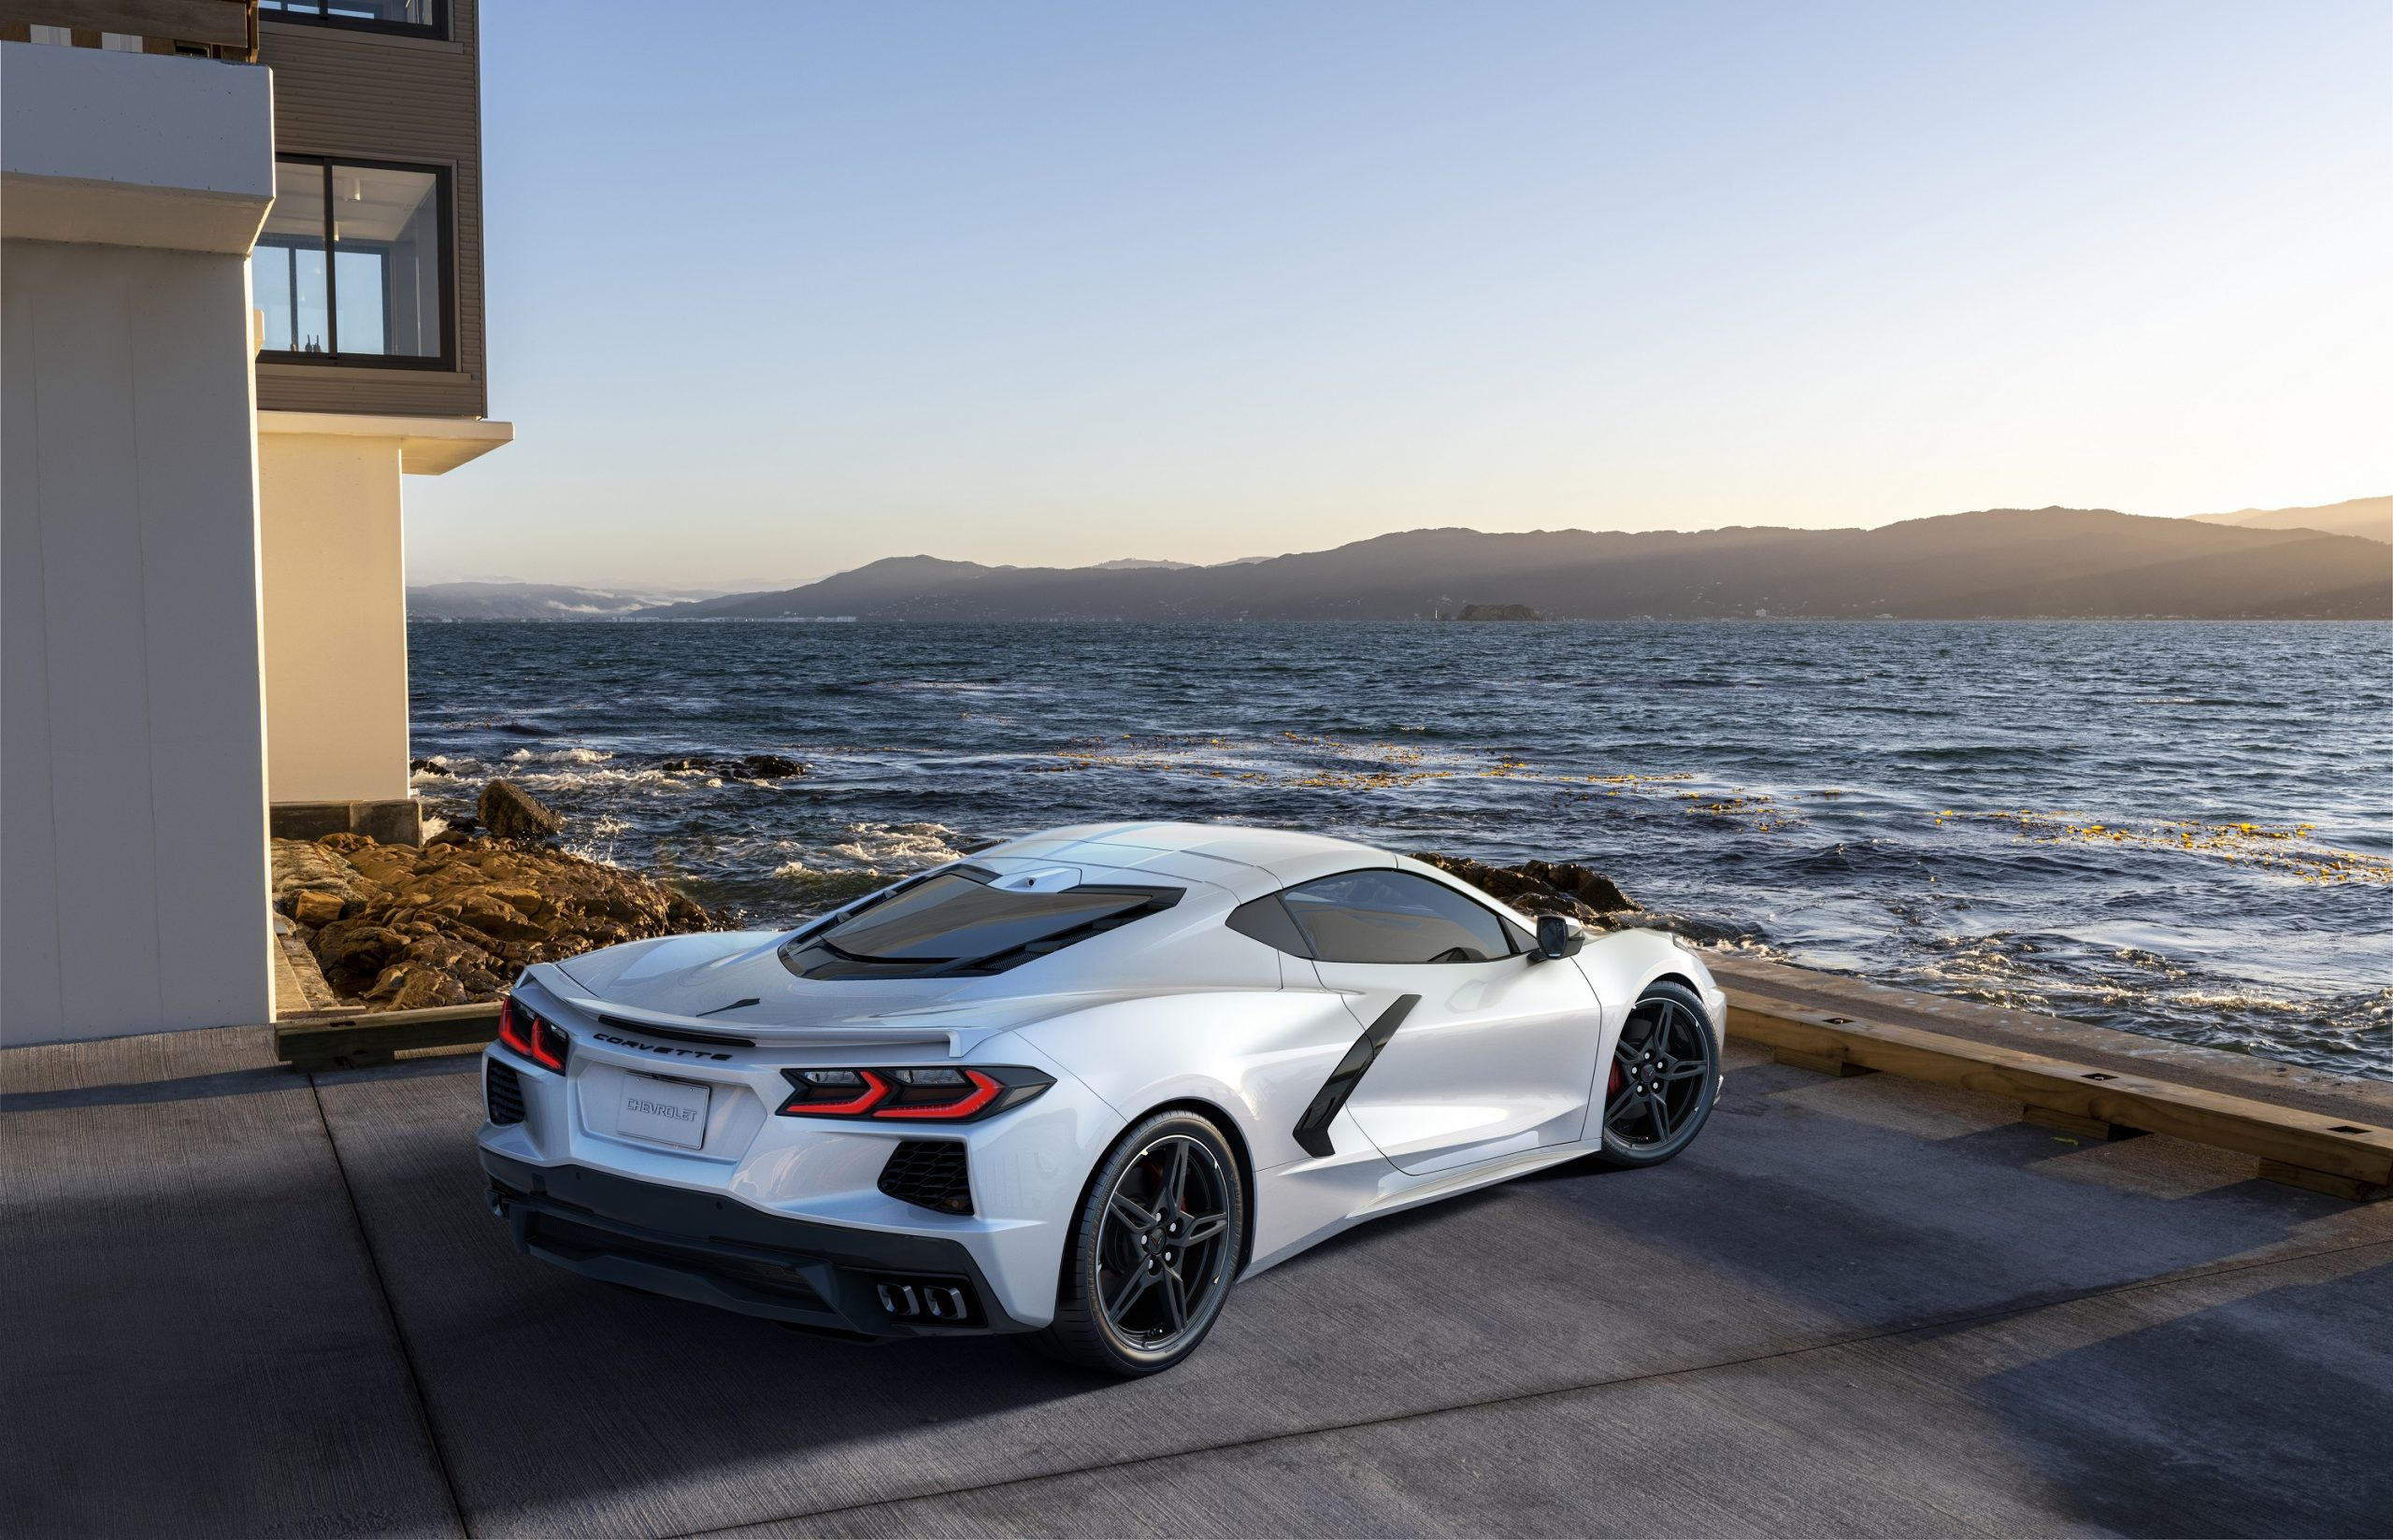 The rear of the 2021 Chevrolet Corvette shot from the rear quarter while facing the sea